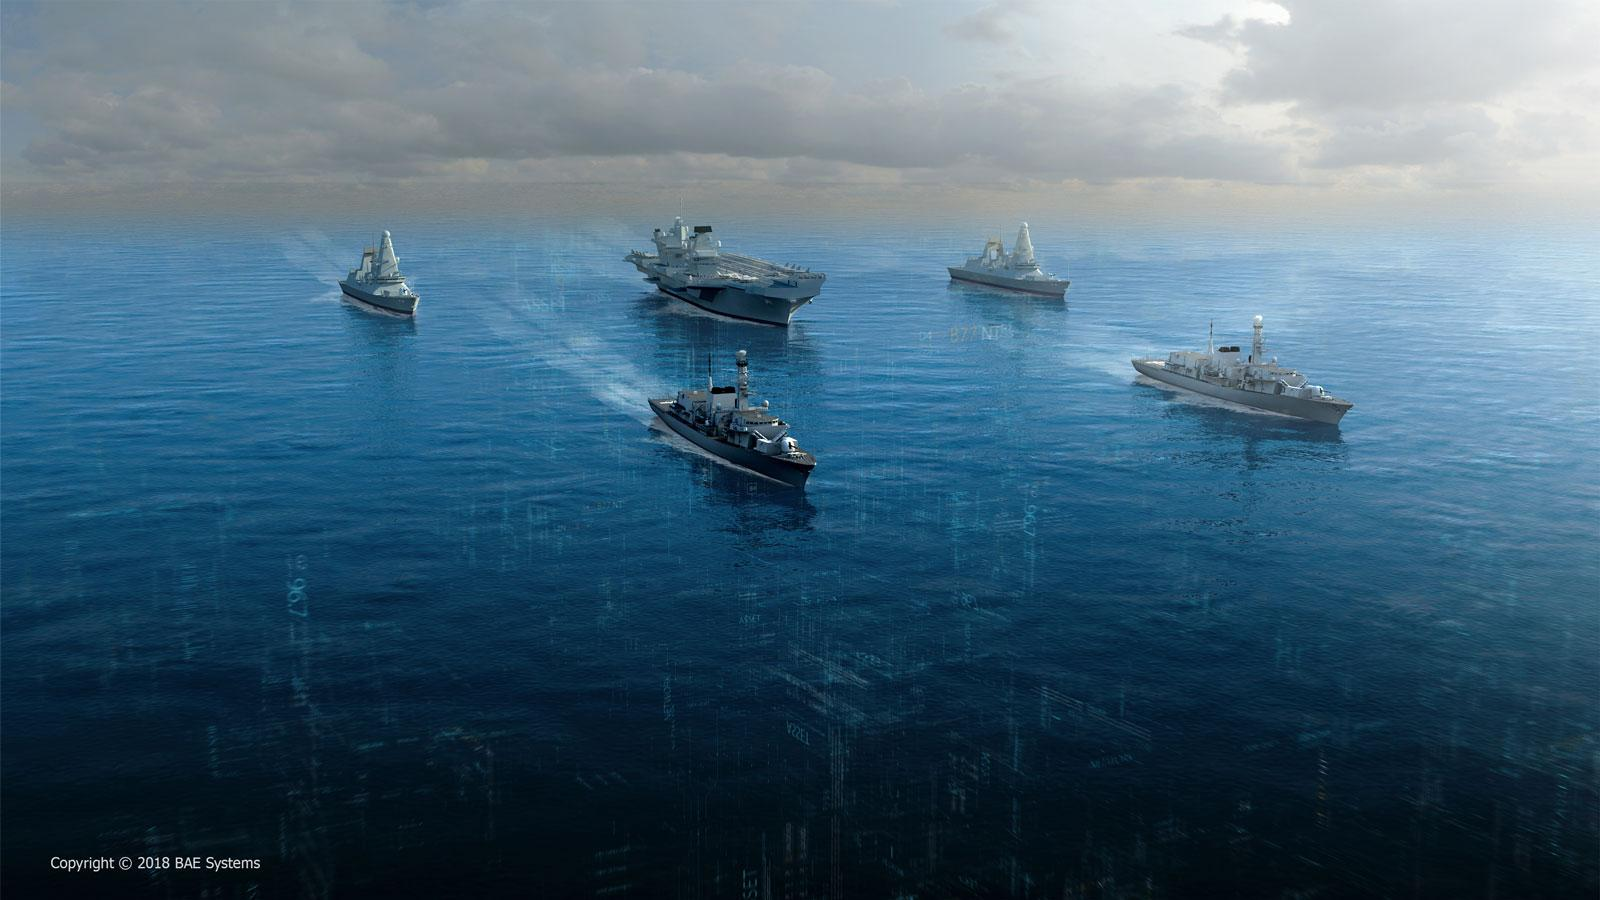 Thales Bae Systems And Cgi Team Up To Respond To The Opportunity To